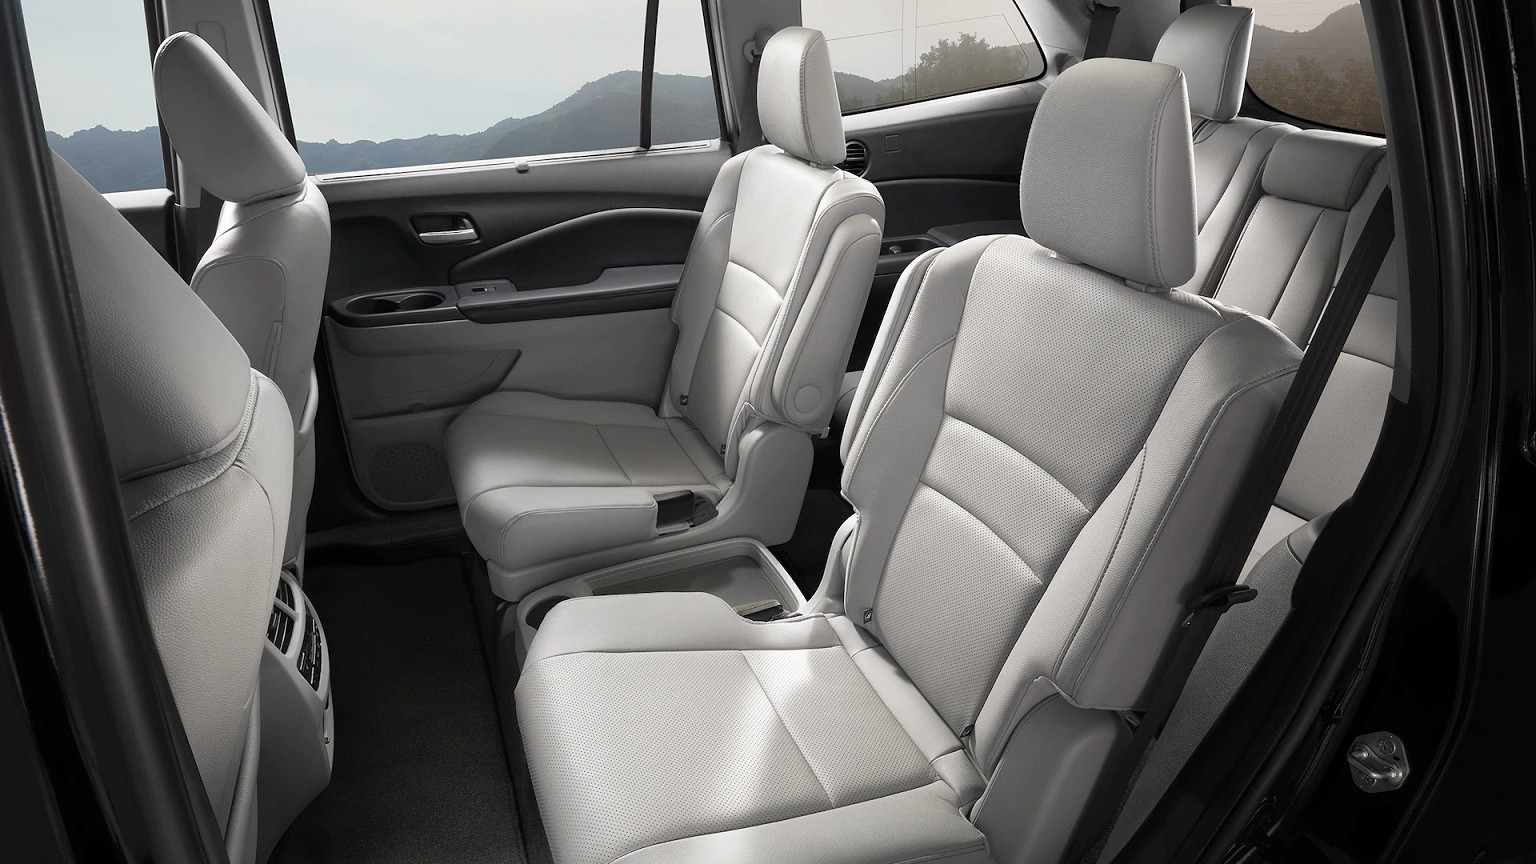 Spacious Cabin of the 2020 Pilot